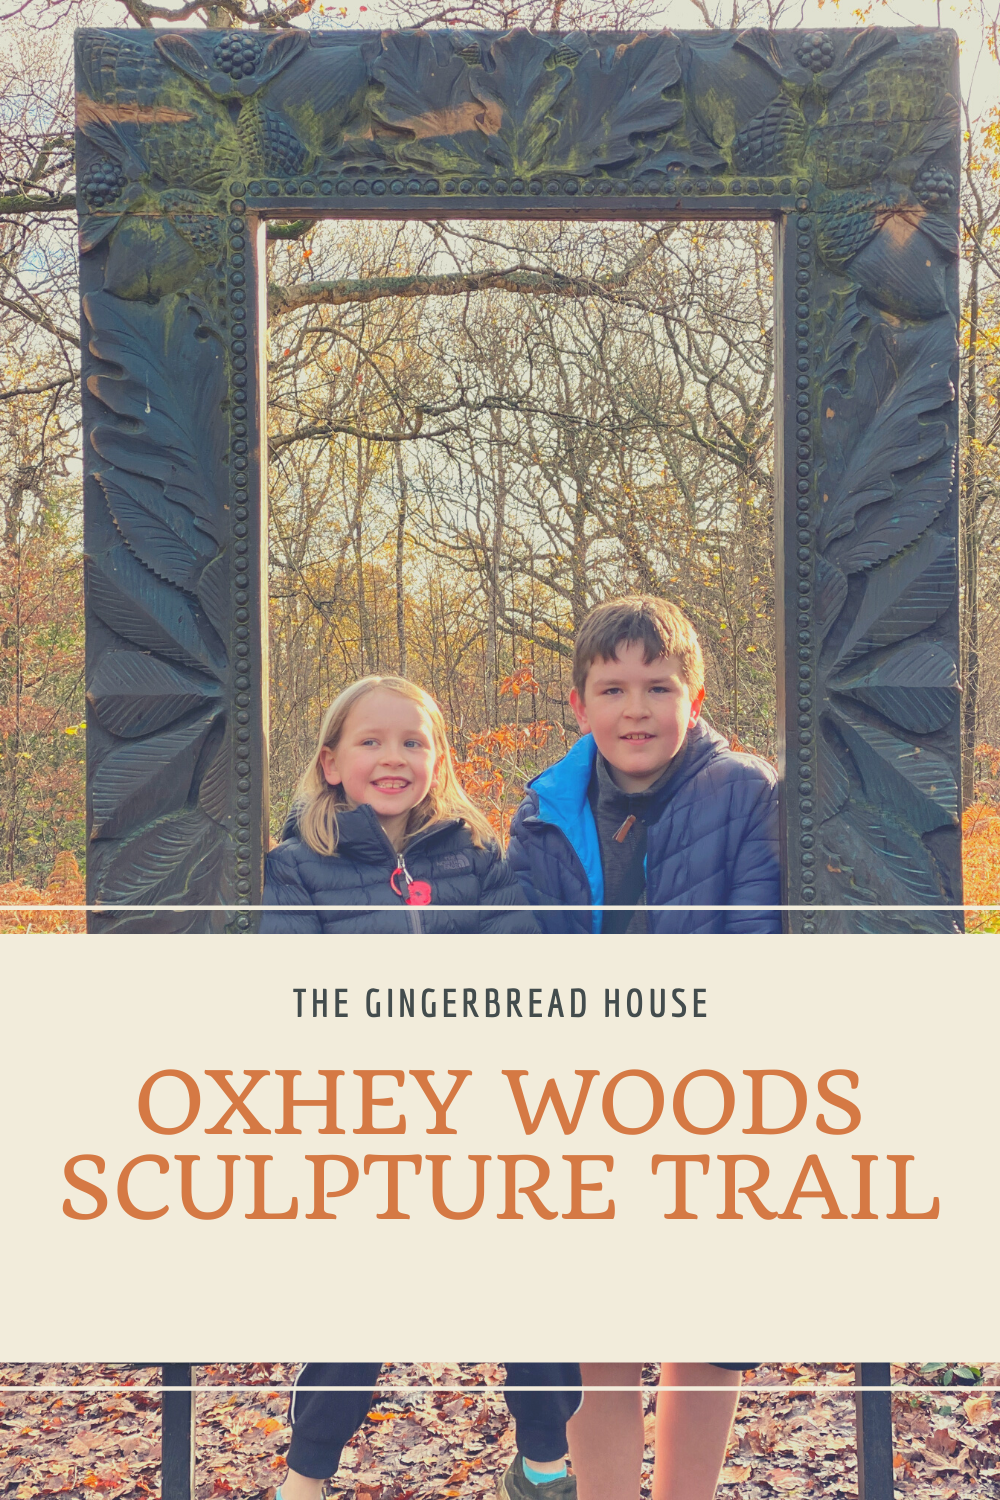 A visit to Oxhey Woods Sculpture Trail